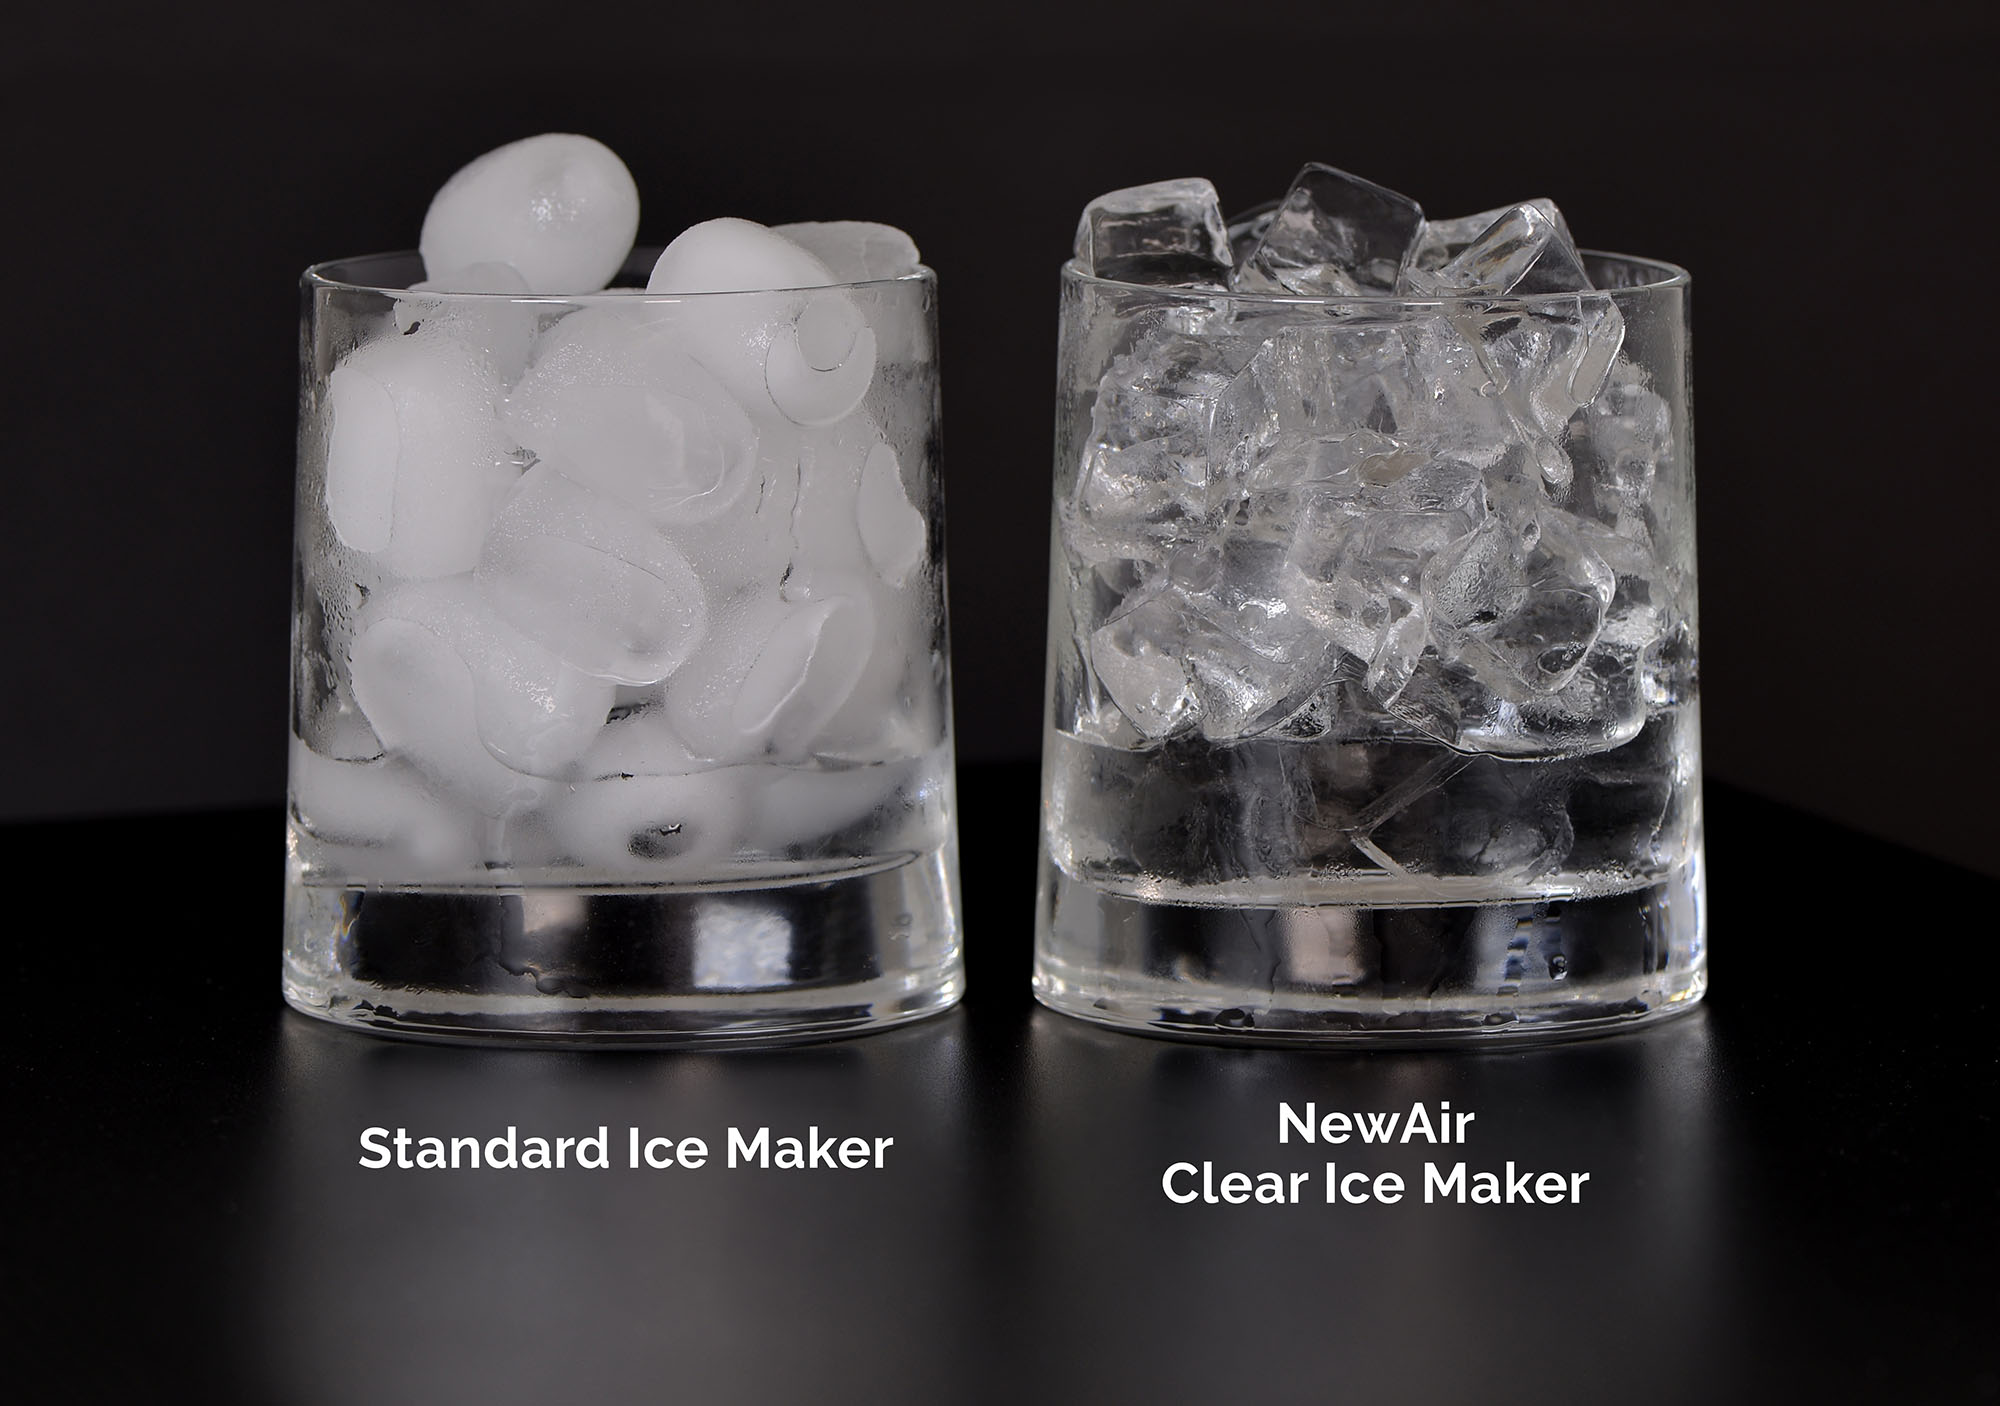 Newair Launches Restaurant Quality Home Ice Maker